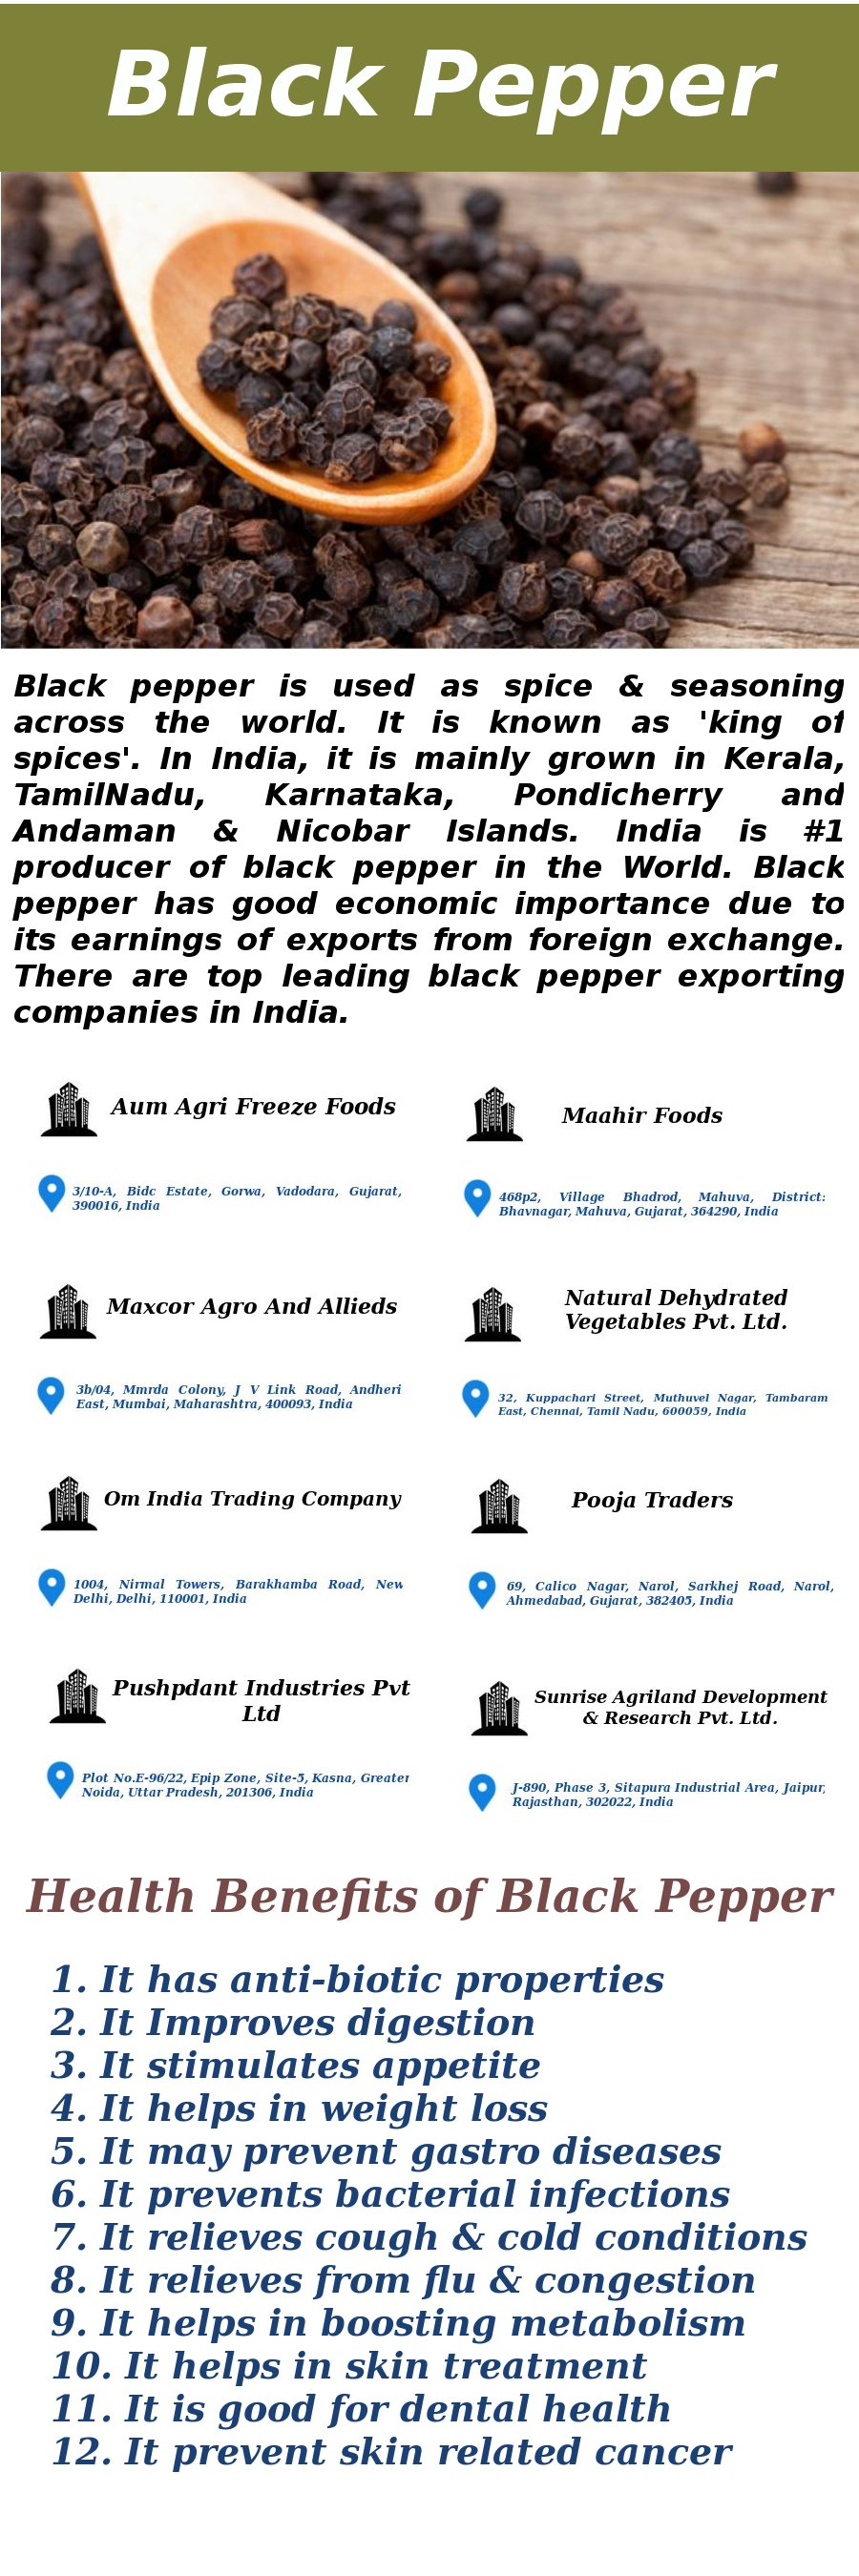 Visit Here India's Top Leading Black Pepper Exporting Companies with